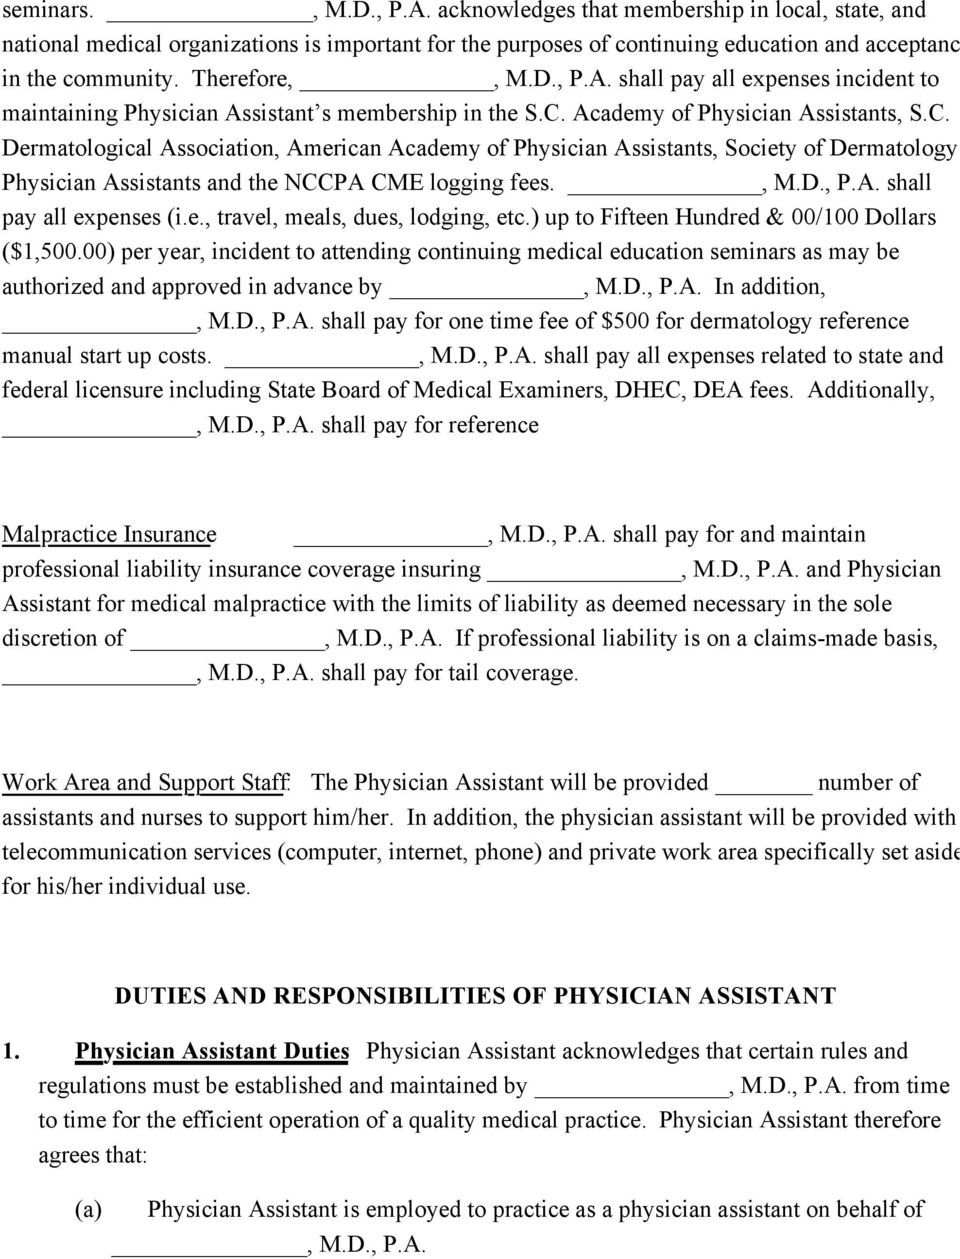 physician assistant employment agreement terms of